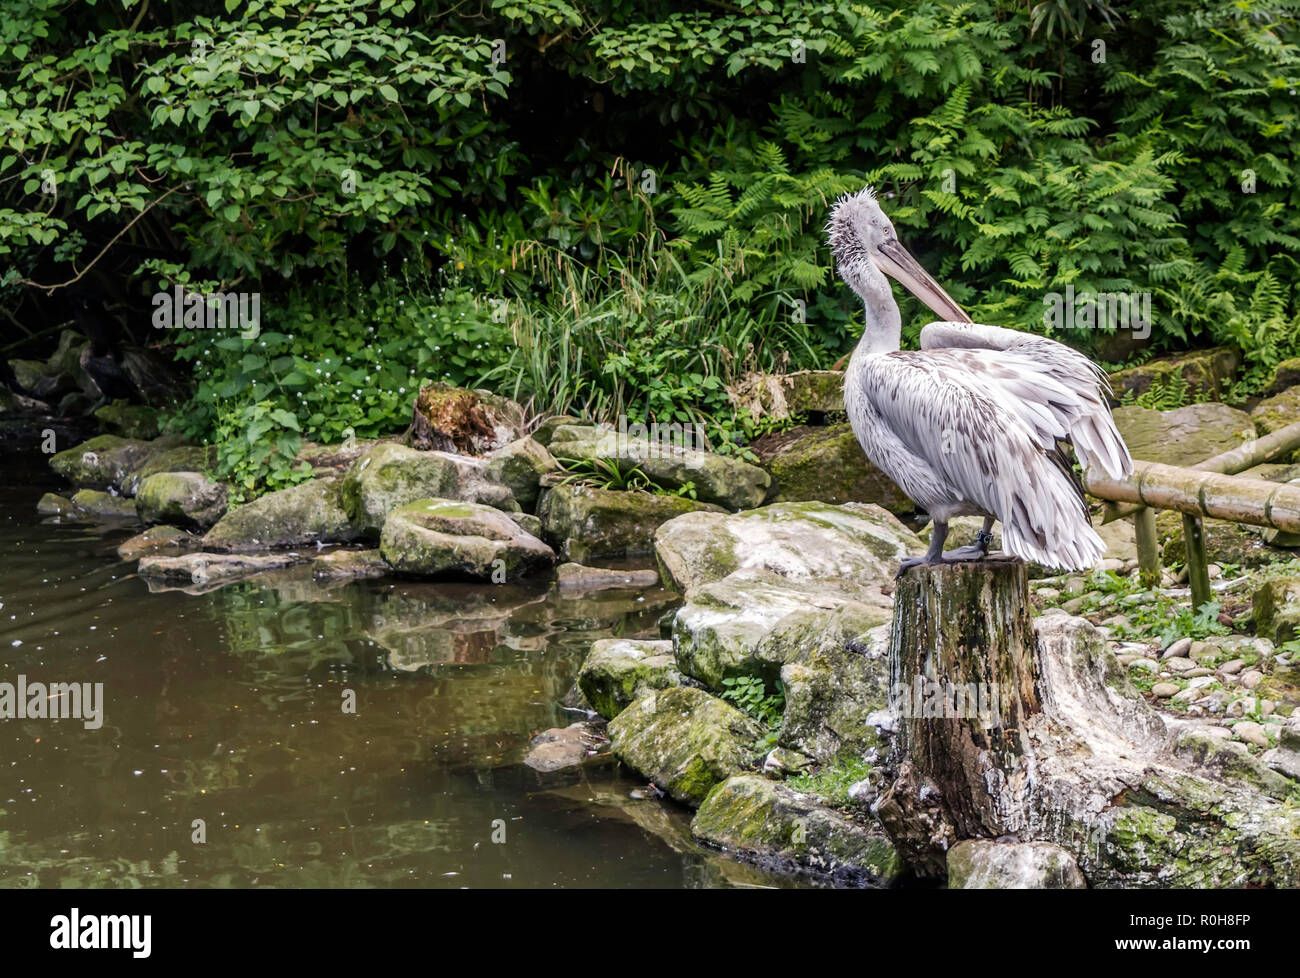 Young Dalmatian pelican (Pelecanus crispus) sitting on a stump near pond. Dalmatian differs from other large species in that it has curly nape feather Stock Photo